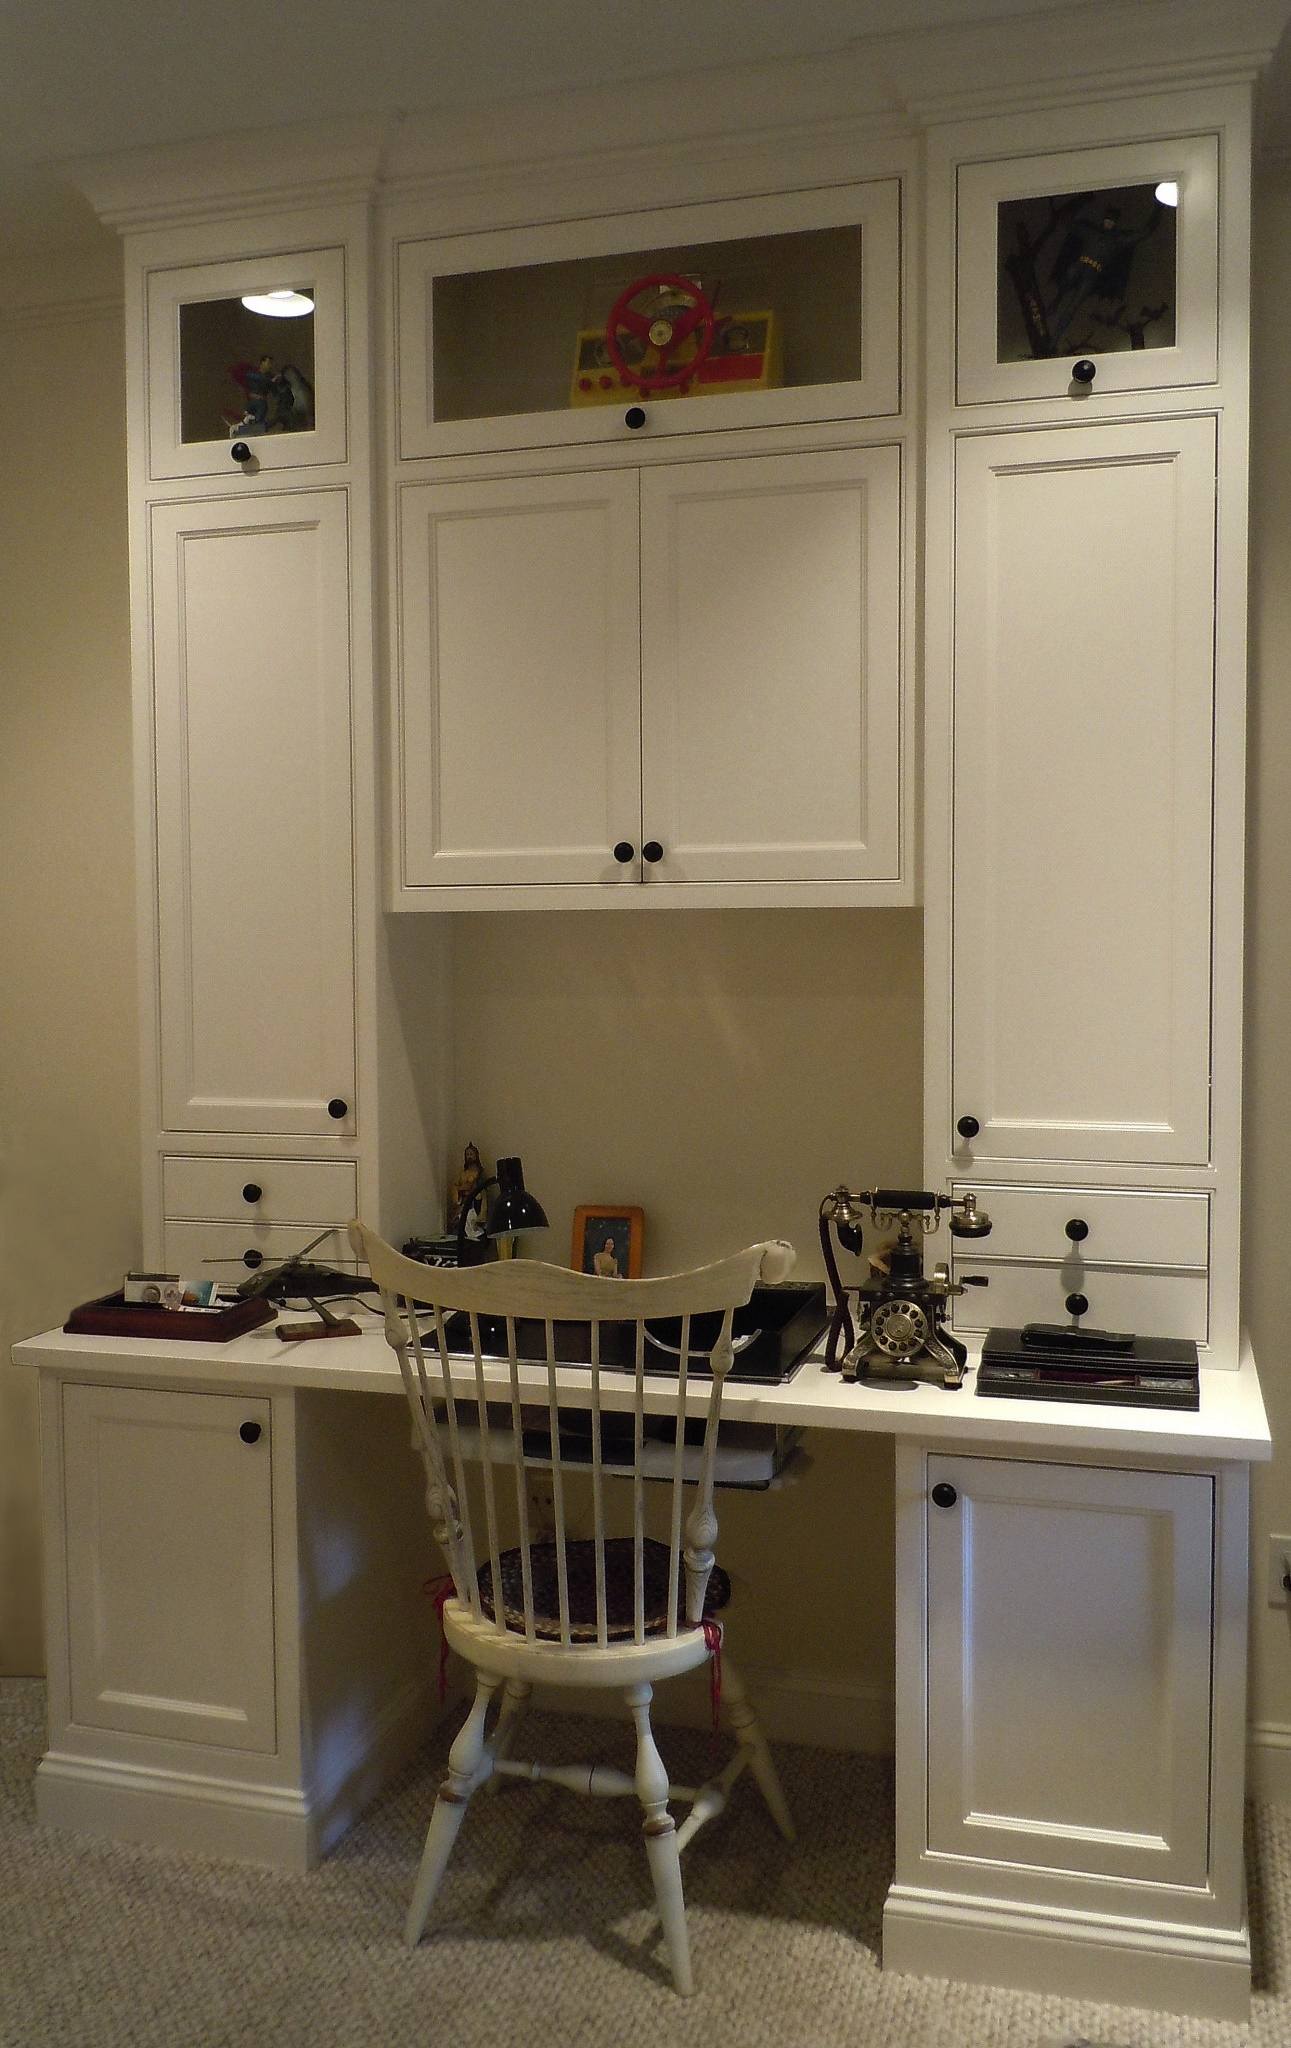 Built-in desks with upper display cabinets